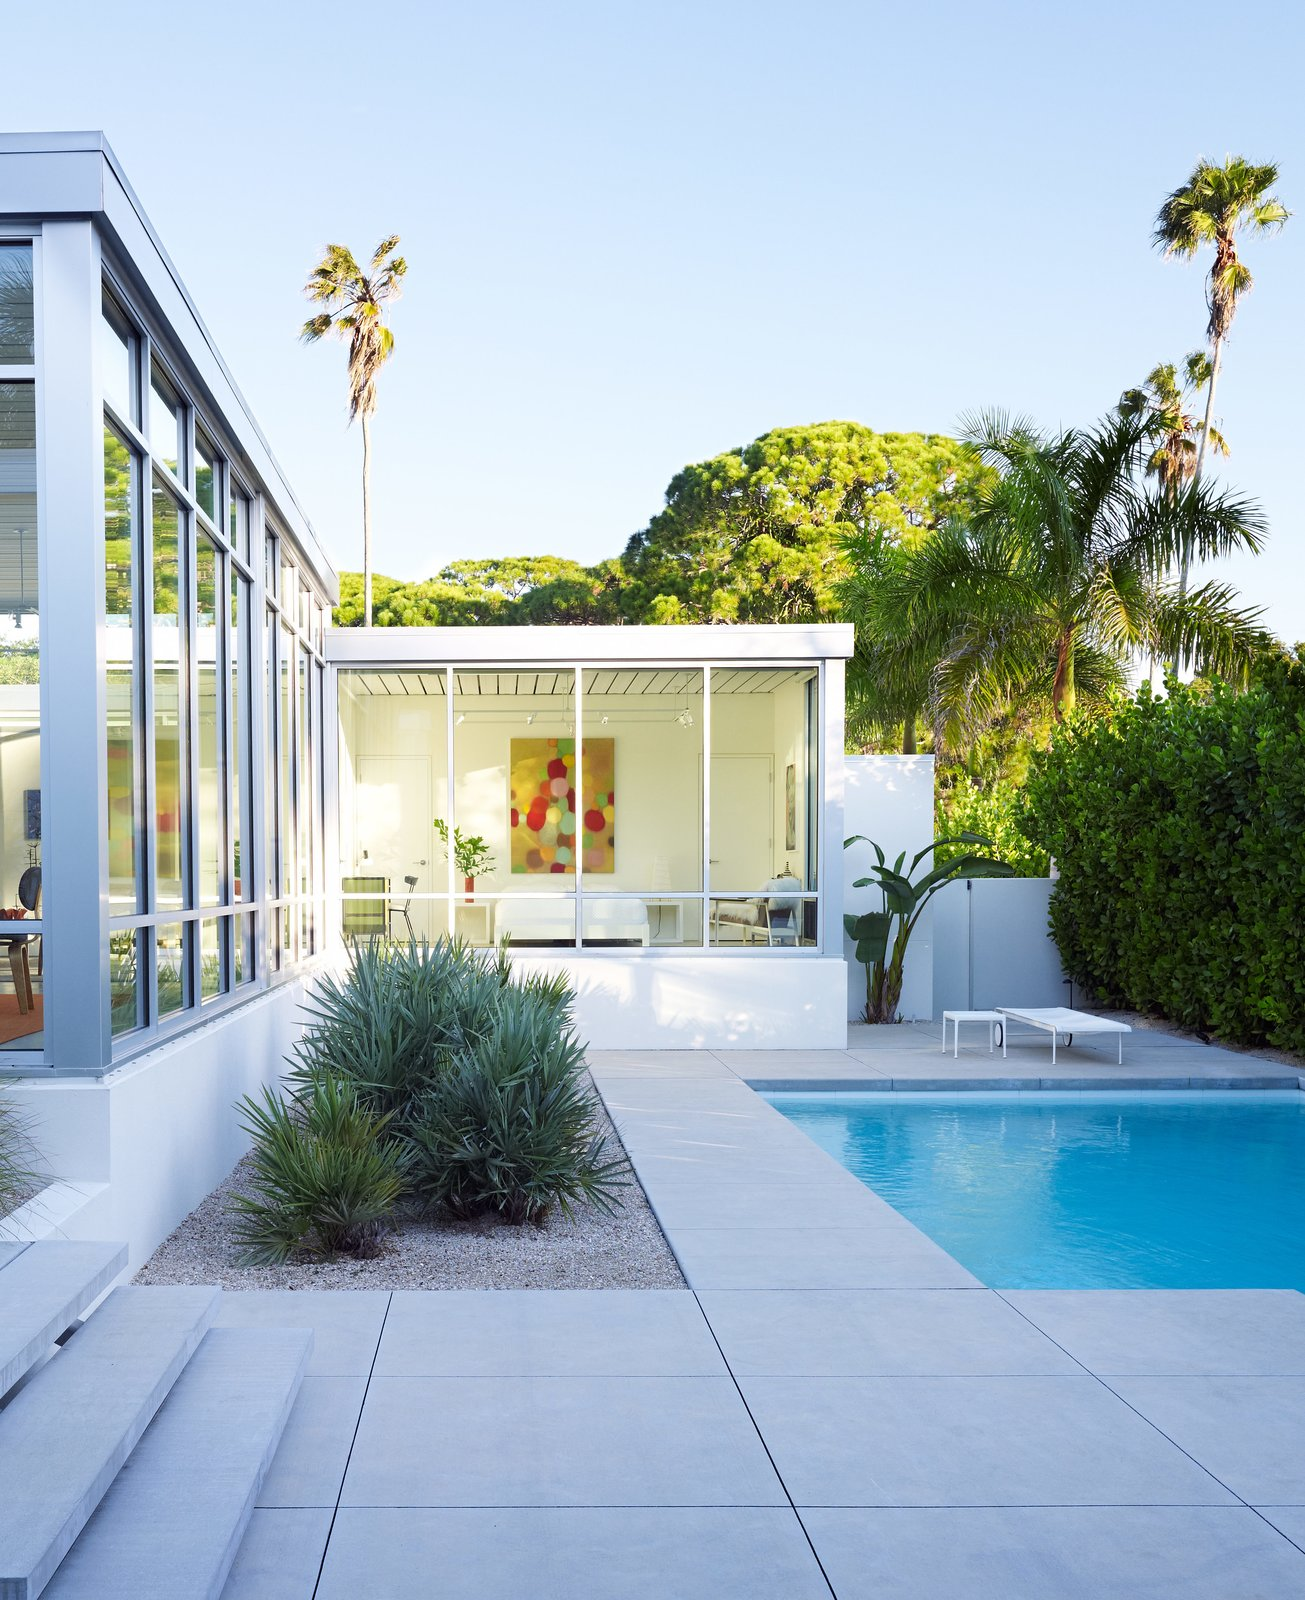 Articles about sparkling new home perfect remake classic sarasota school modernism on Dwell.com